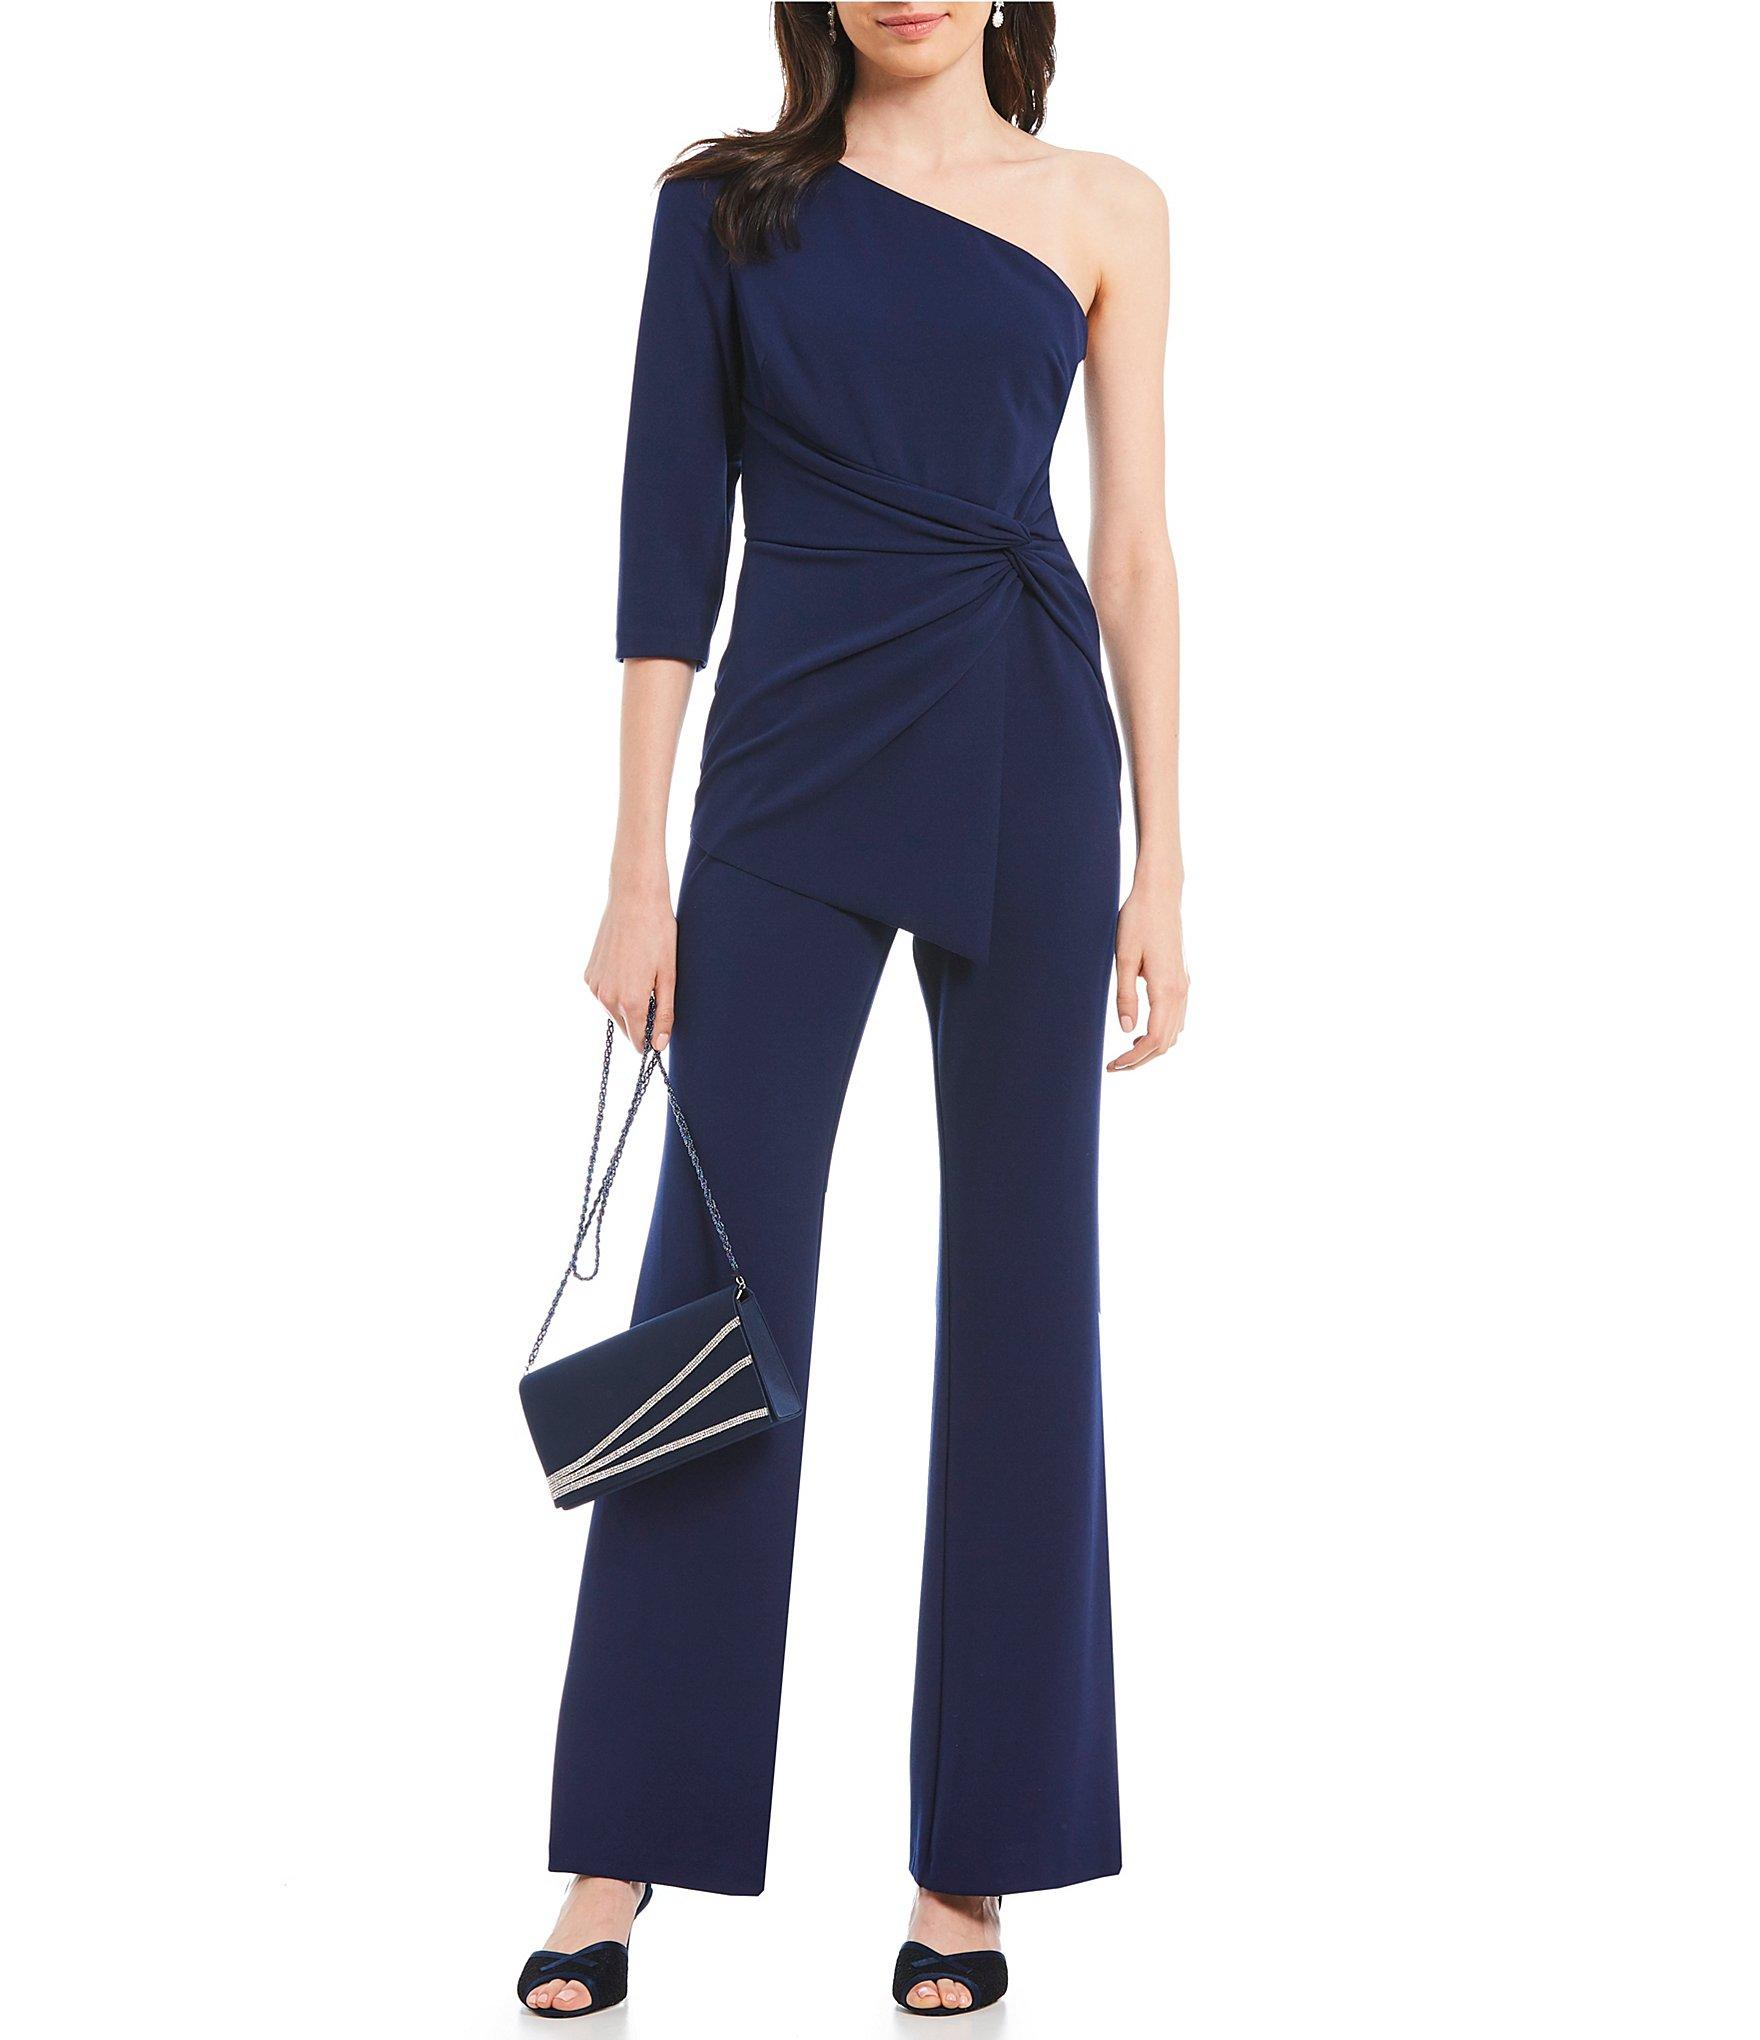 63325d68f1e Lyst - Adrianna Papell One Shoulder Knot Waist Jumpsuit in Blue